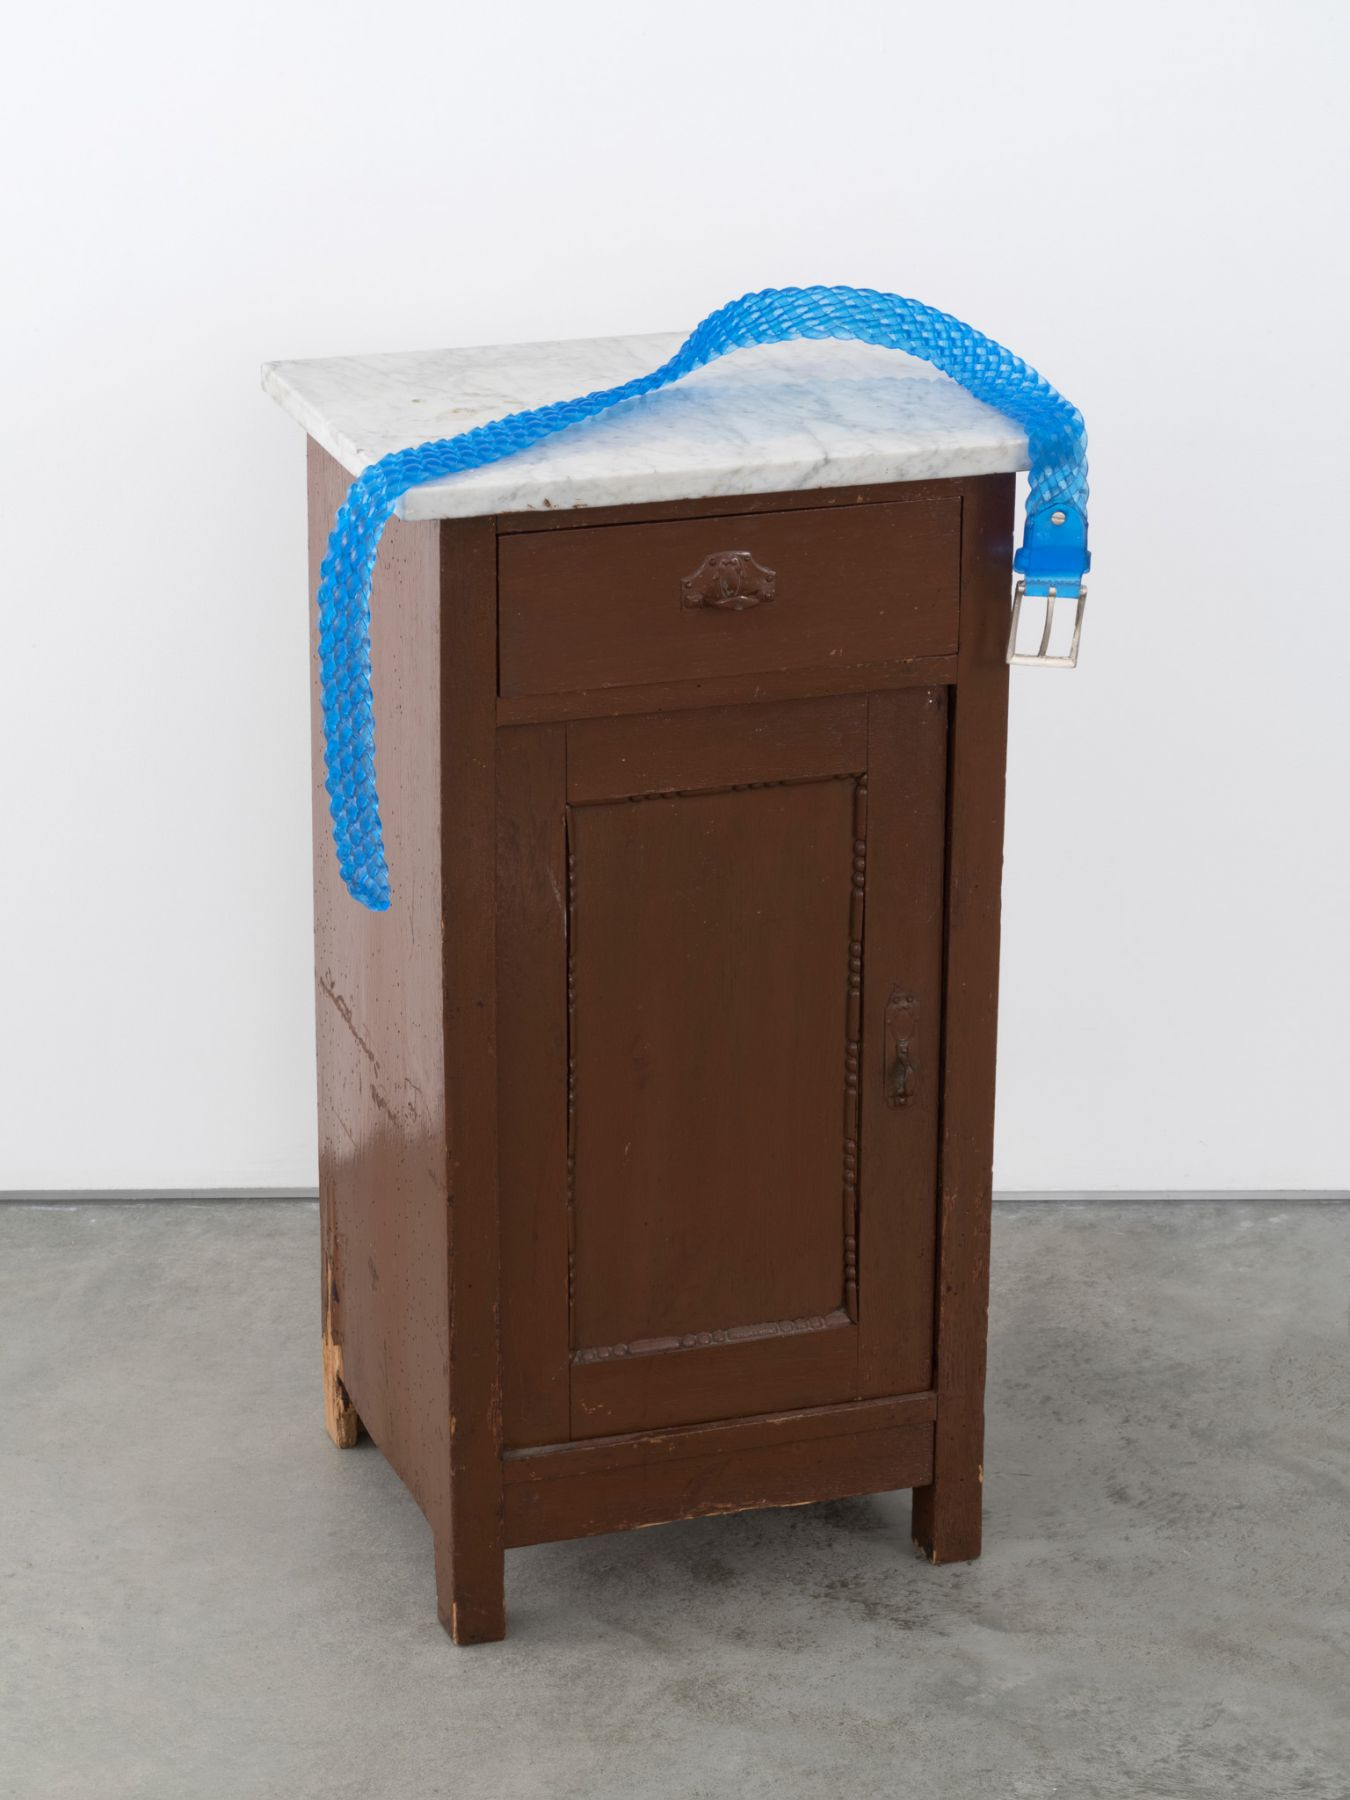 Valentin Carron, Belt on small cabinet, 2014